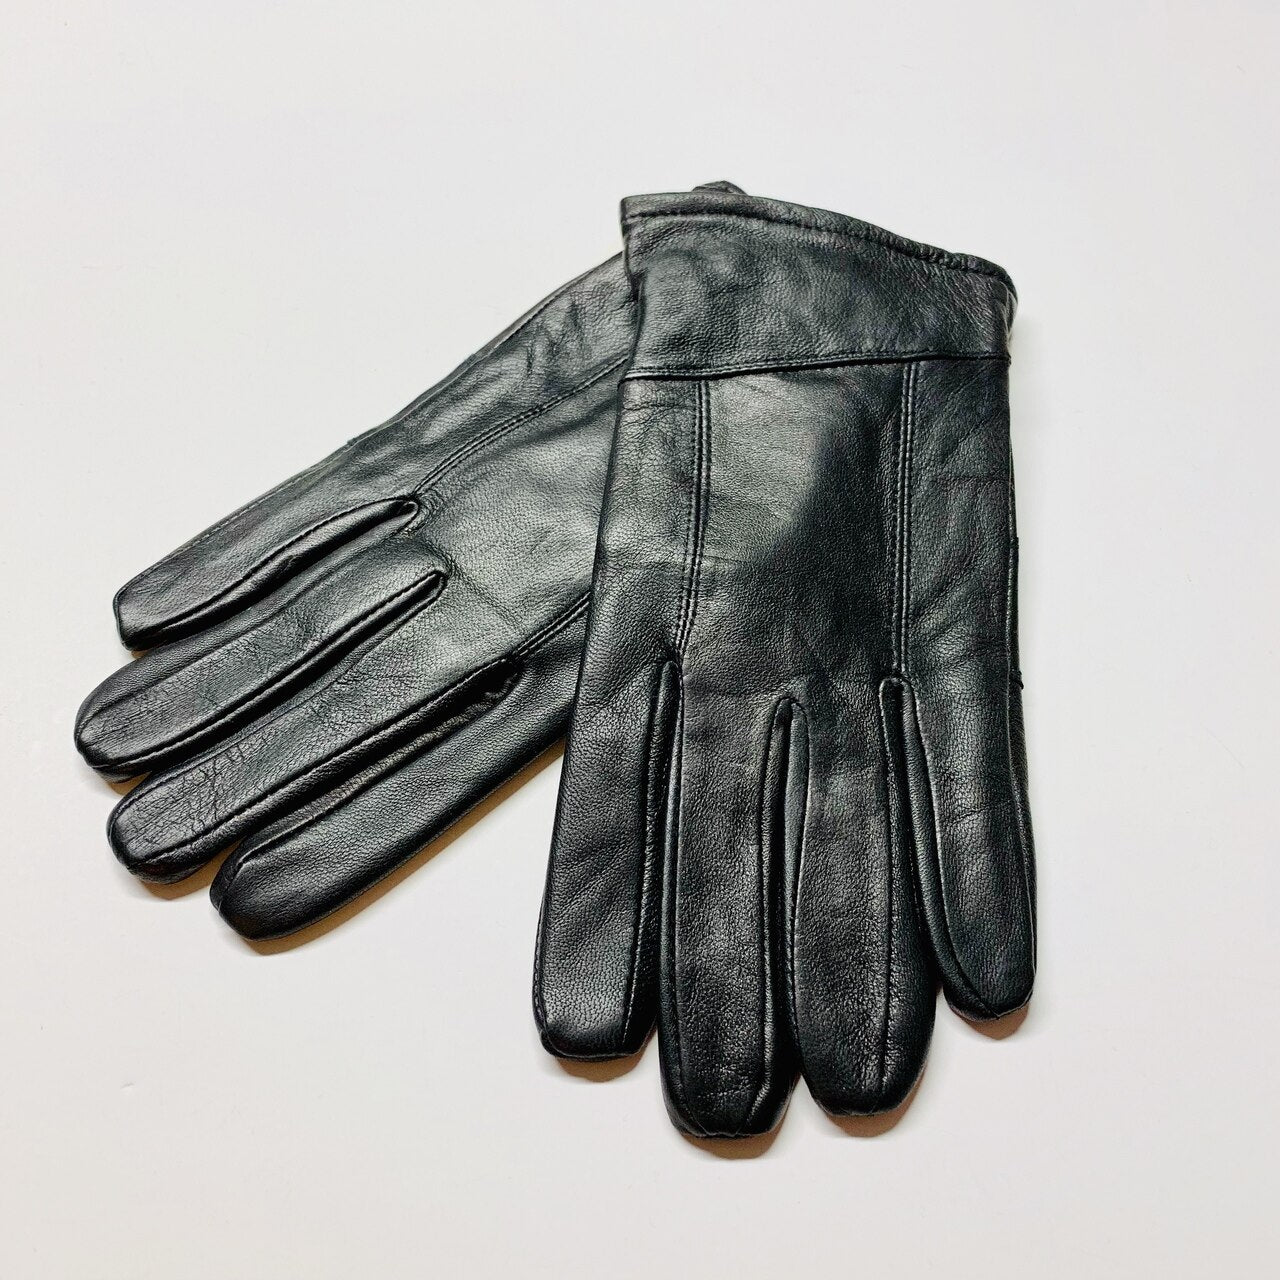 Leather Gloves - Fur lined